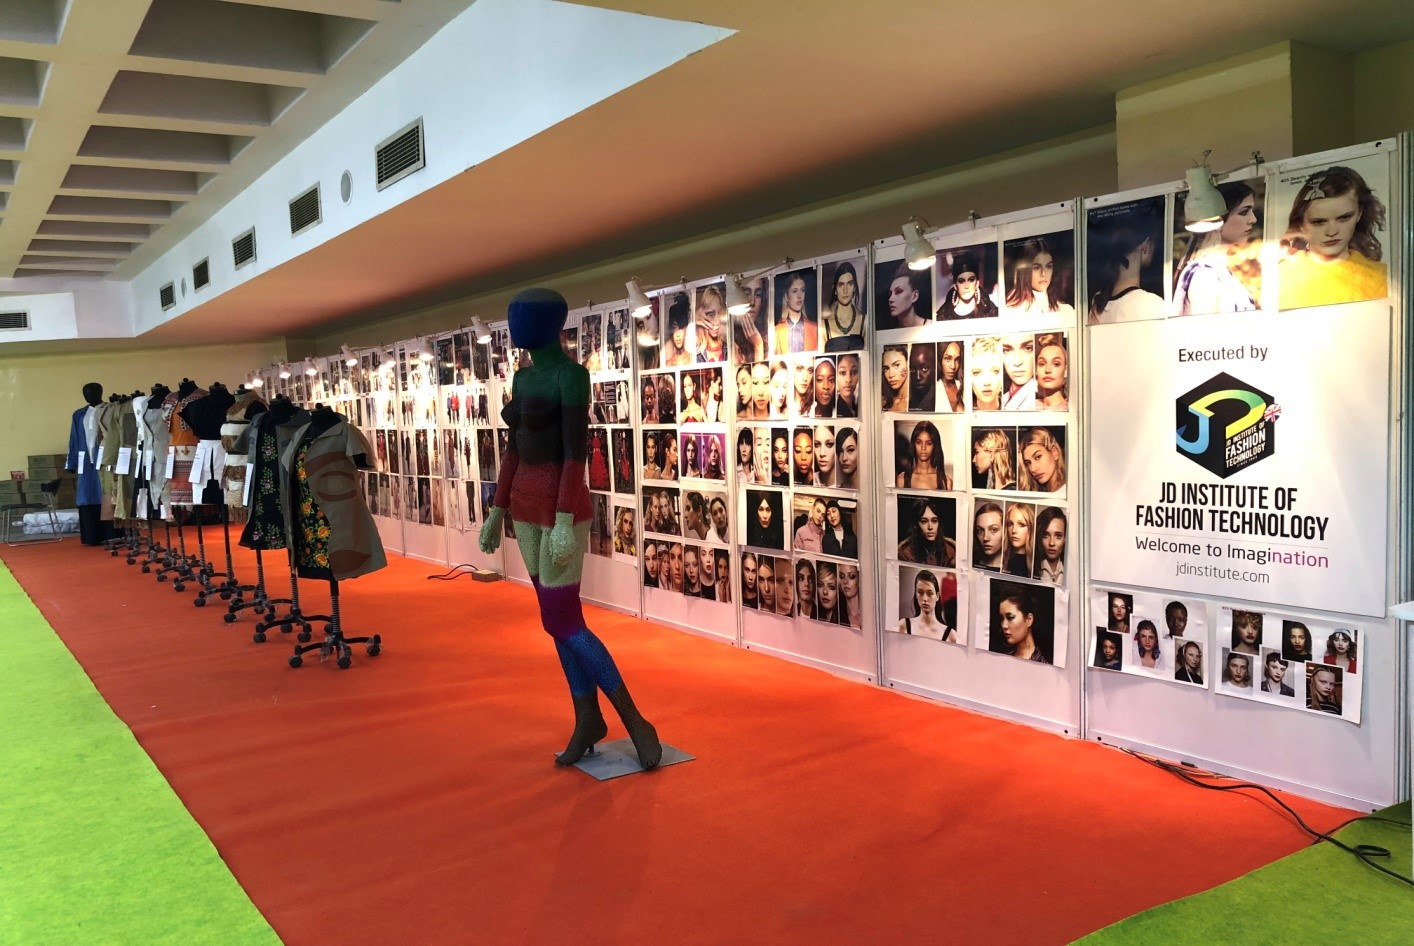 trade show 2018 trade show 2018 - TREND PAVILION - JD Institute at the Fabrics & Accessories Trade Show 2018